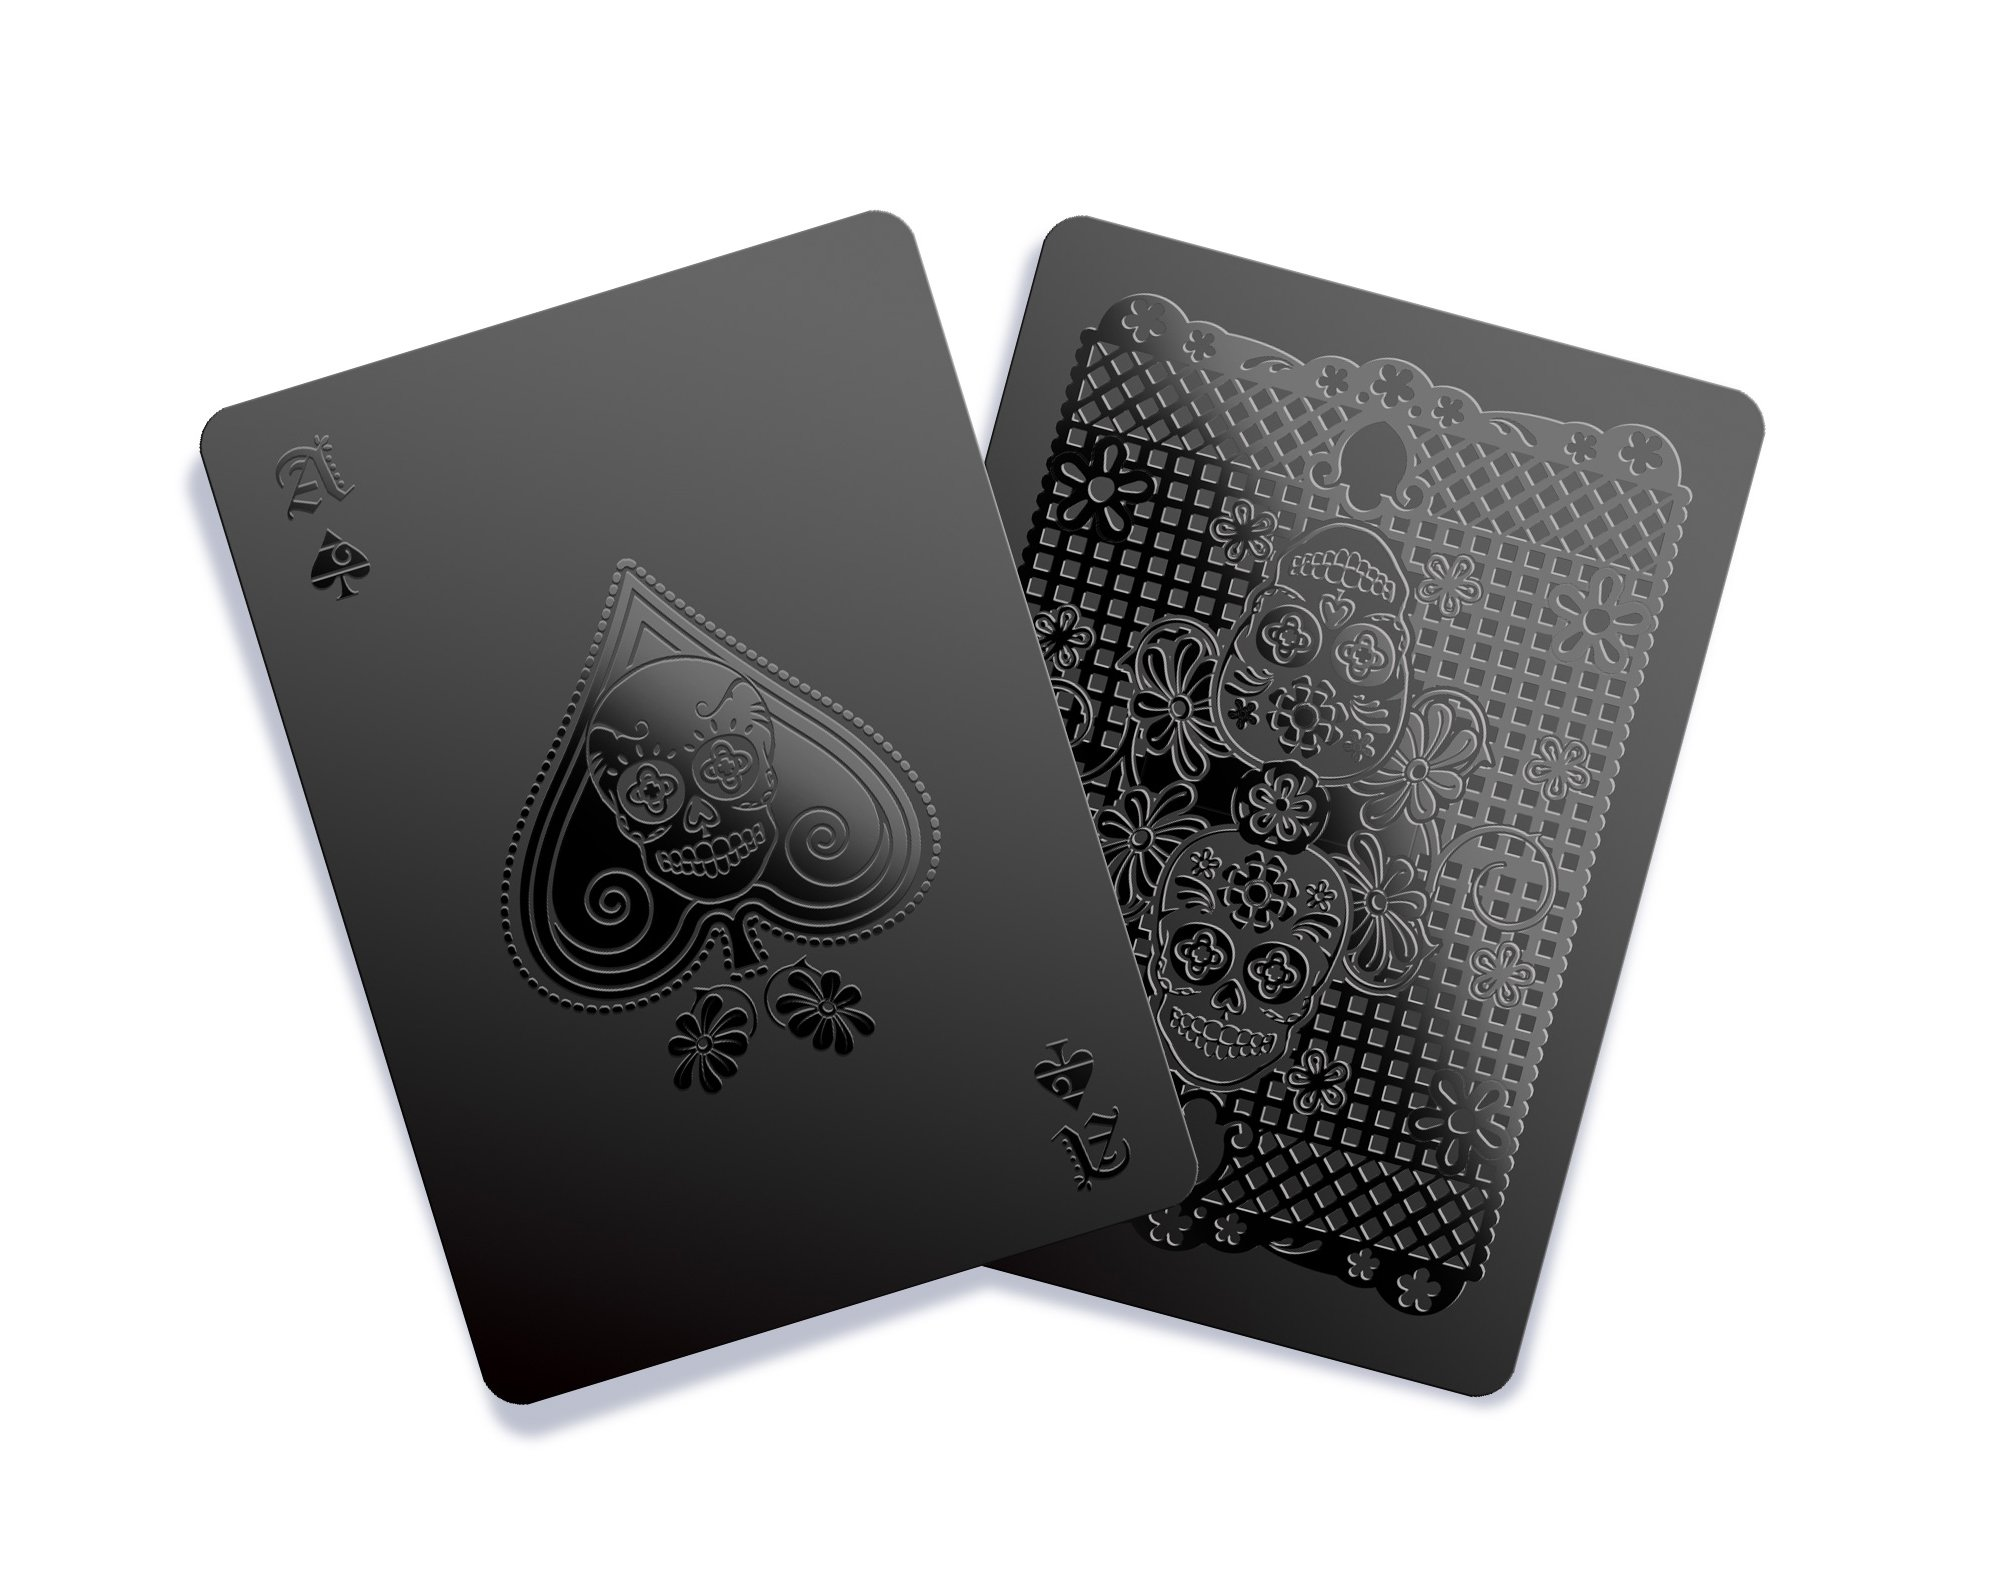 Gent Supply Black Playing Cards - Day of the Dead Edition